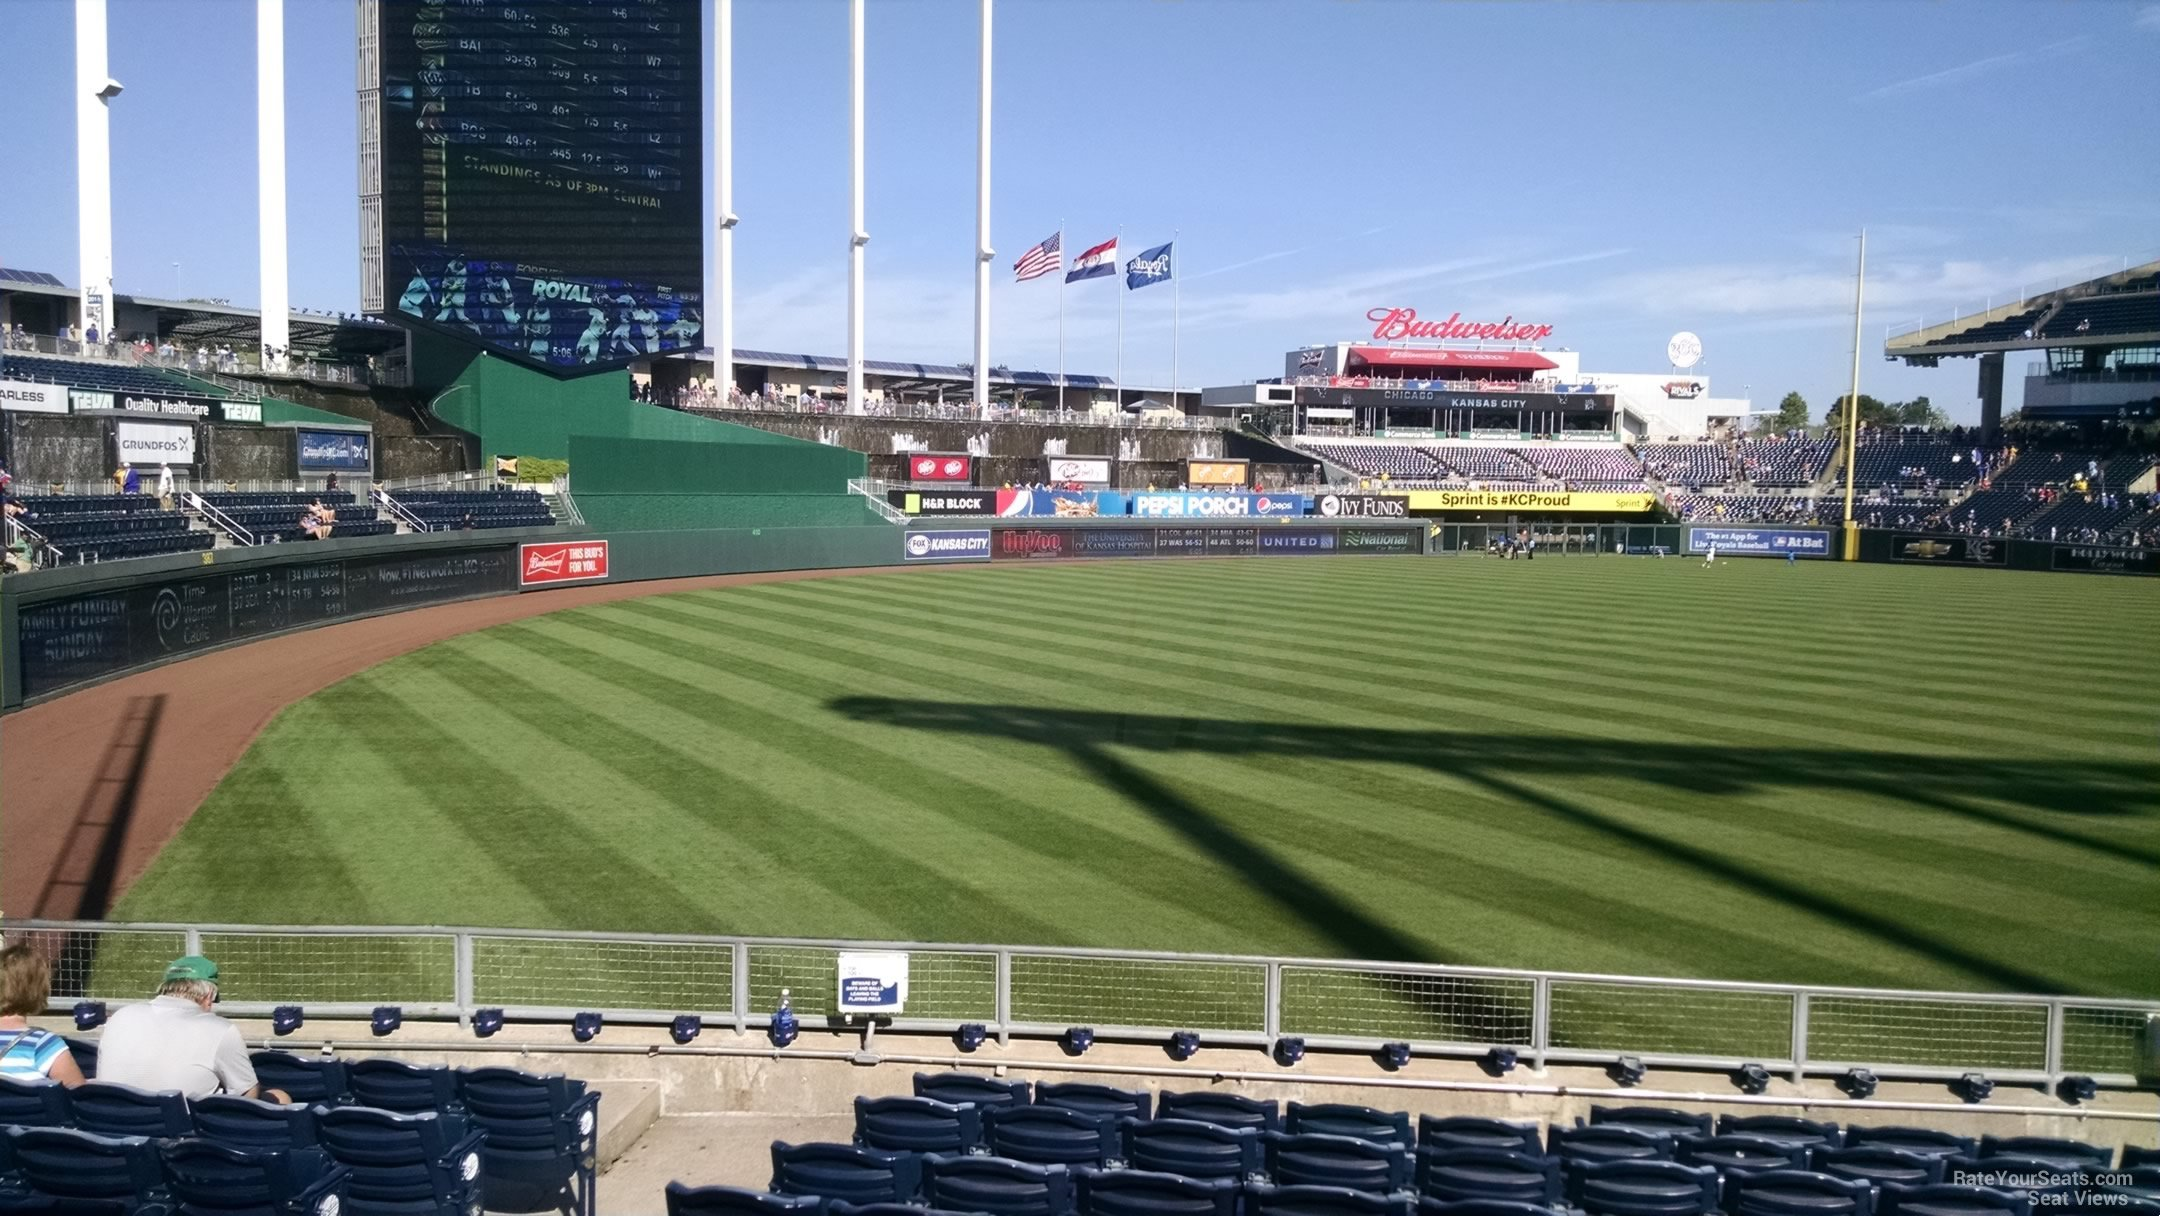 Kauffman Stadium Section 109 - RateYourSeats.com